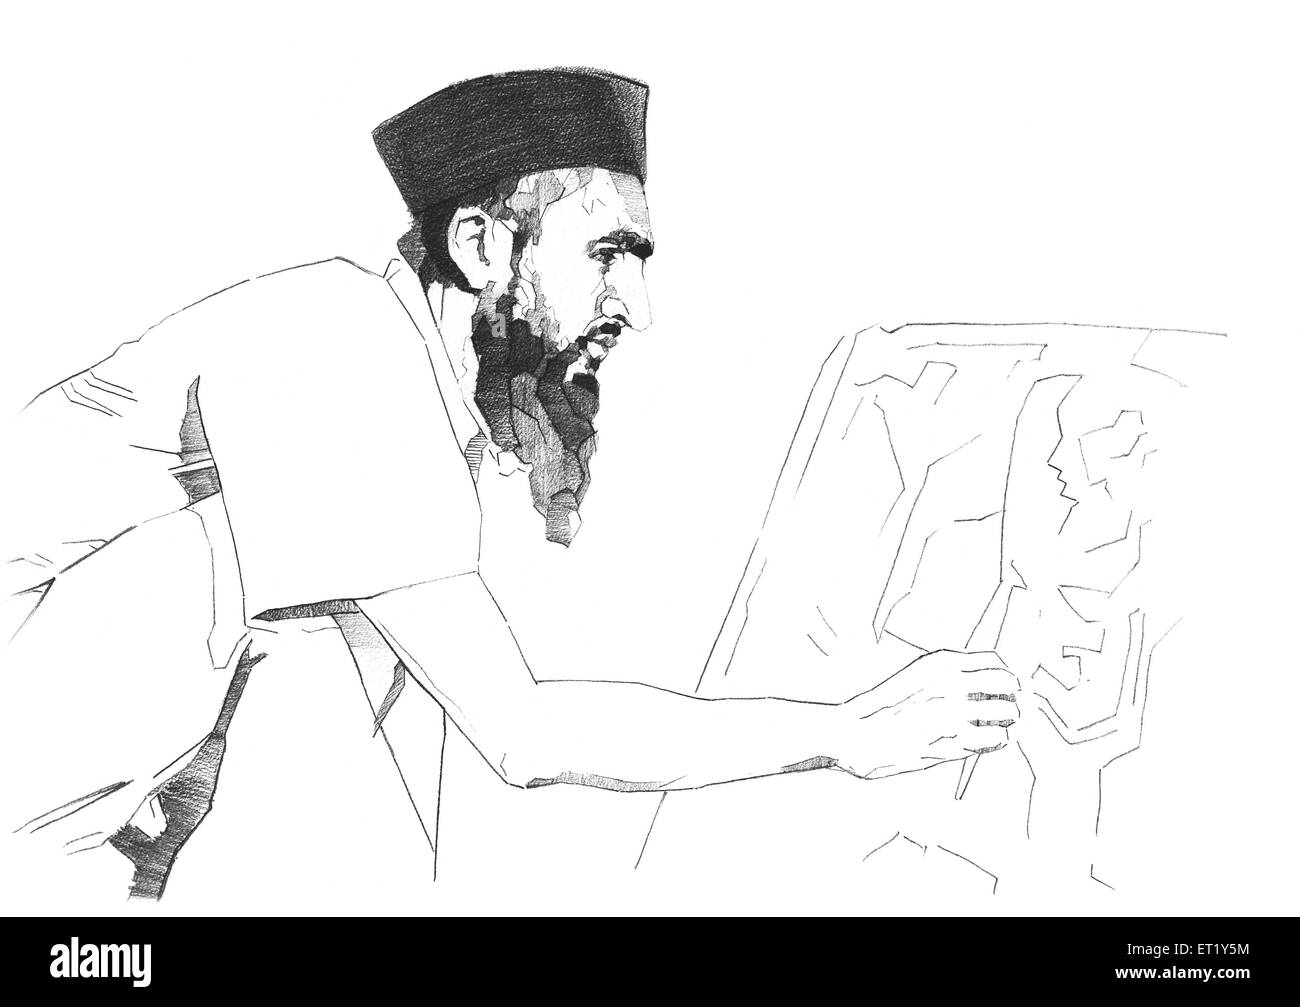 drawing of m f Hussain making sketch India Asia - Stock Image